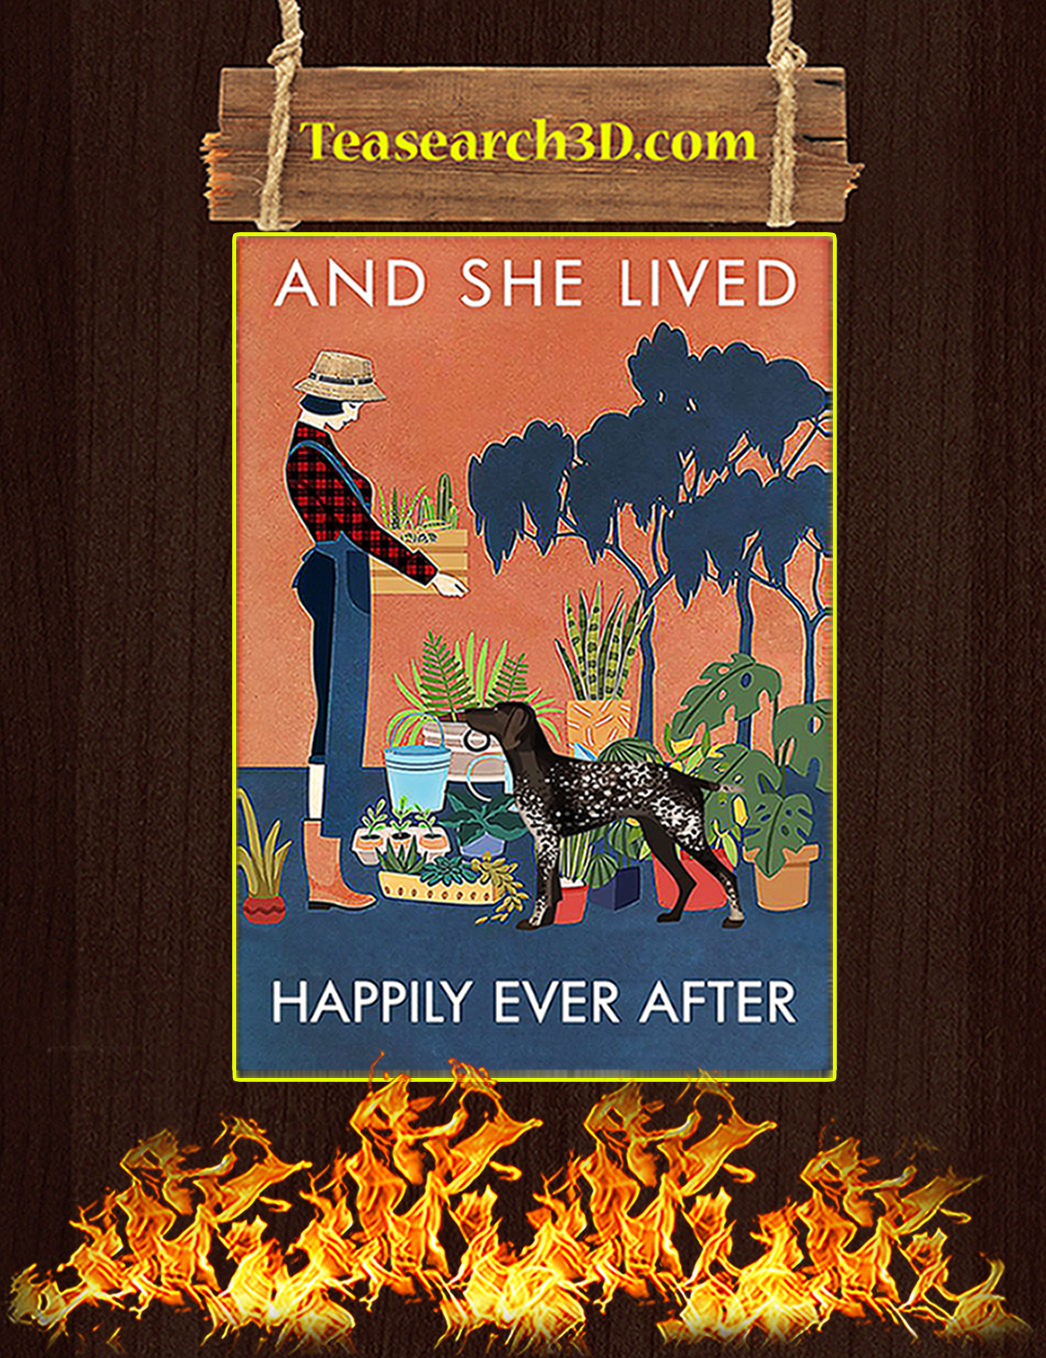 German Shorthaired Pointer And she lived happily ever after poster A1